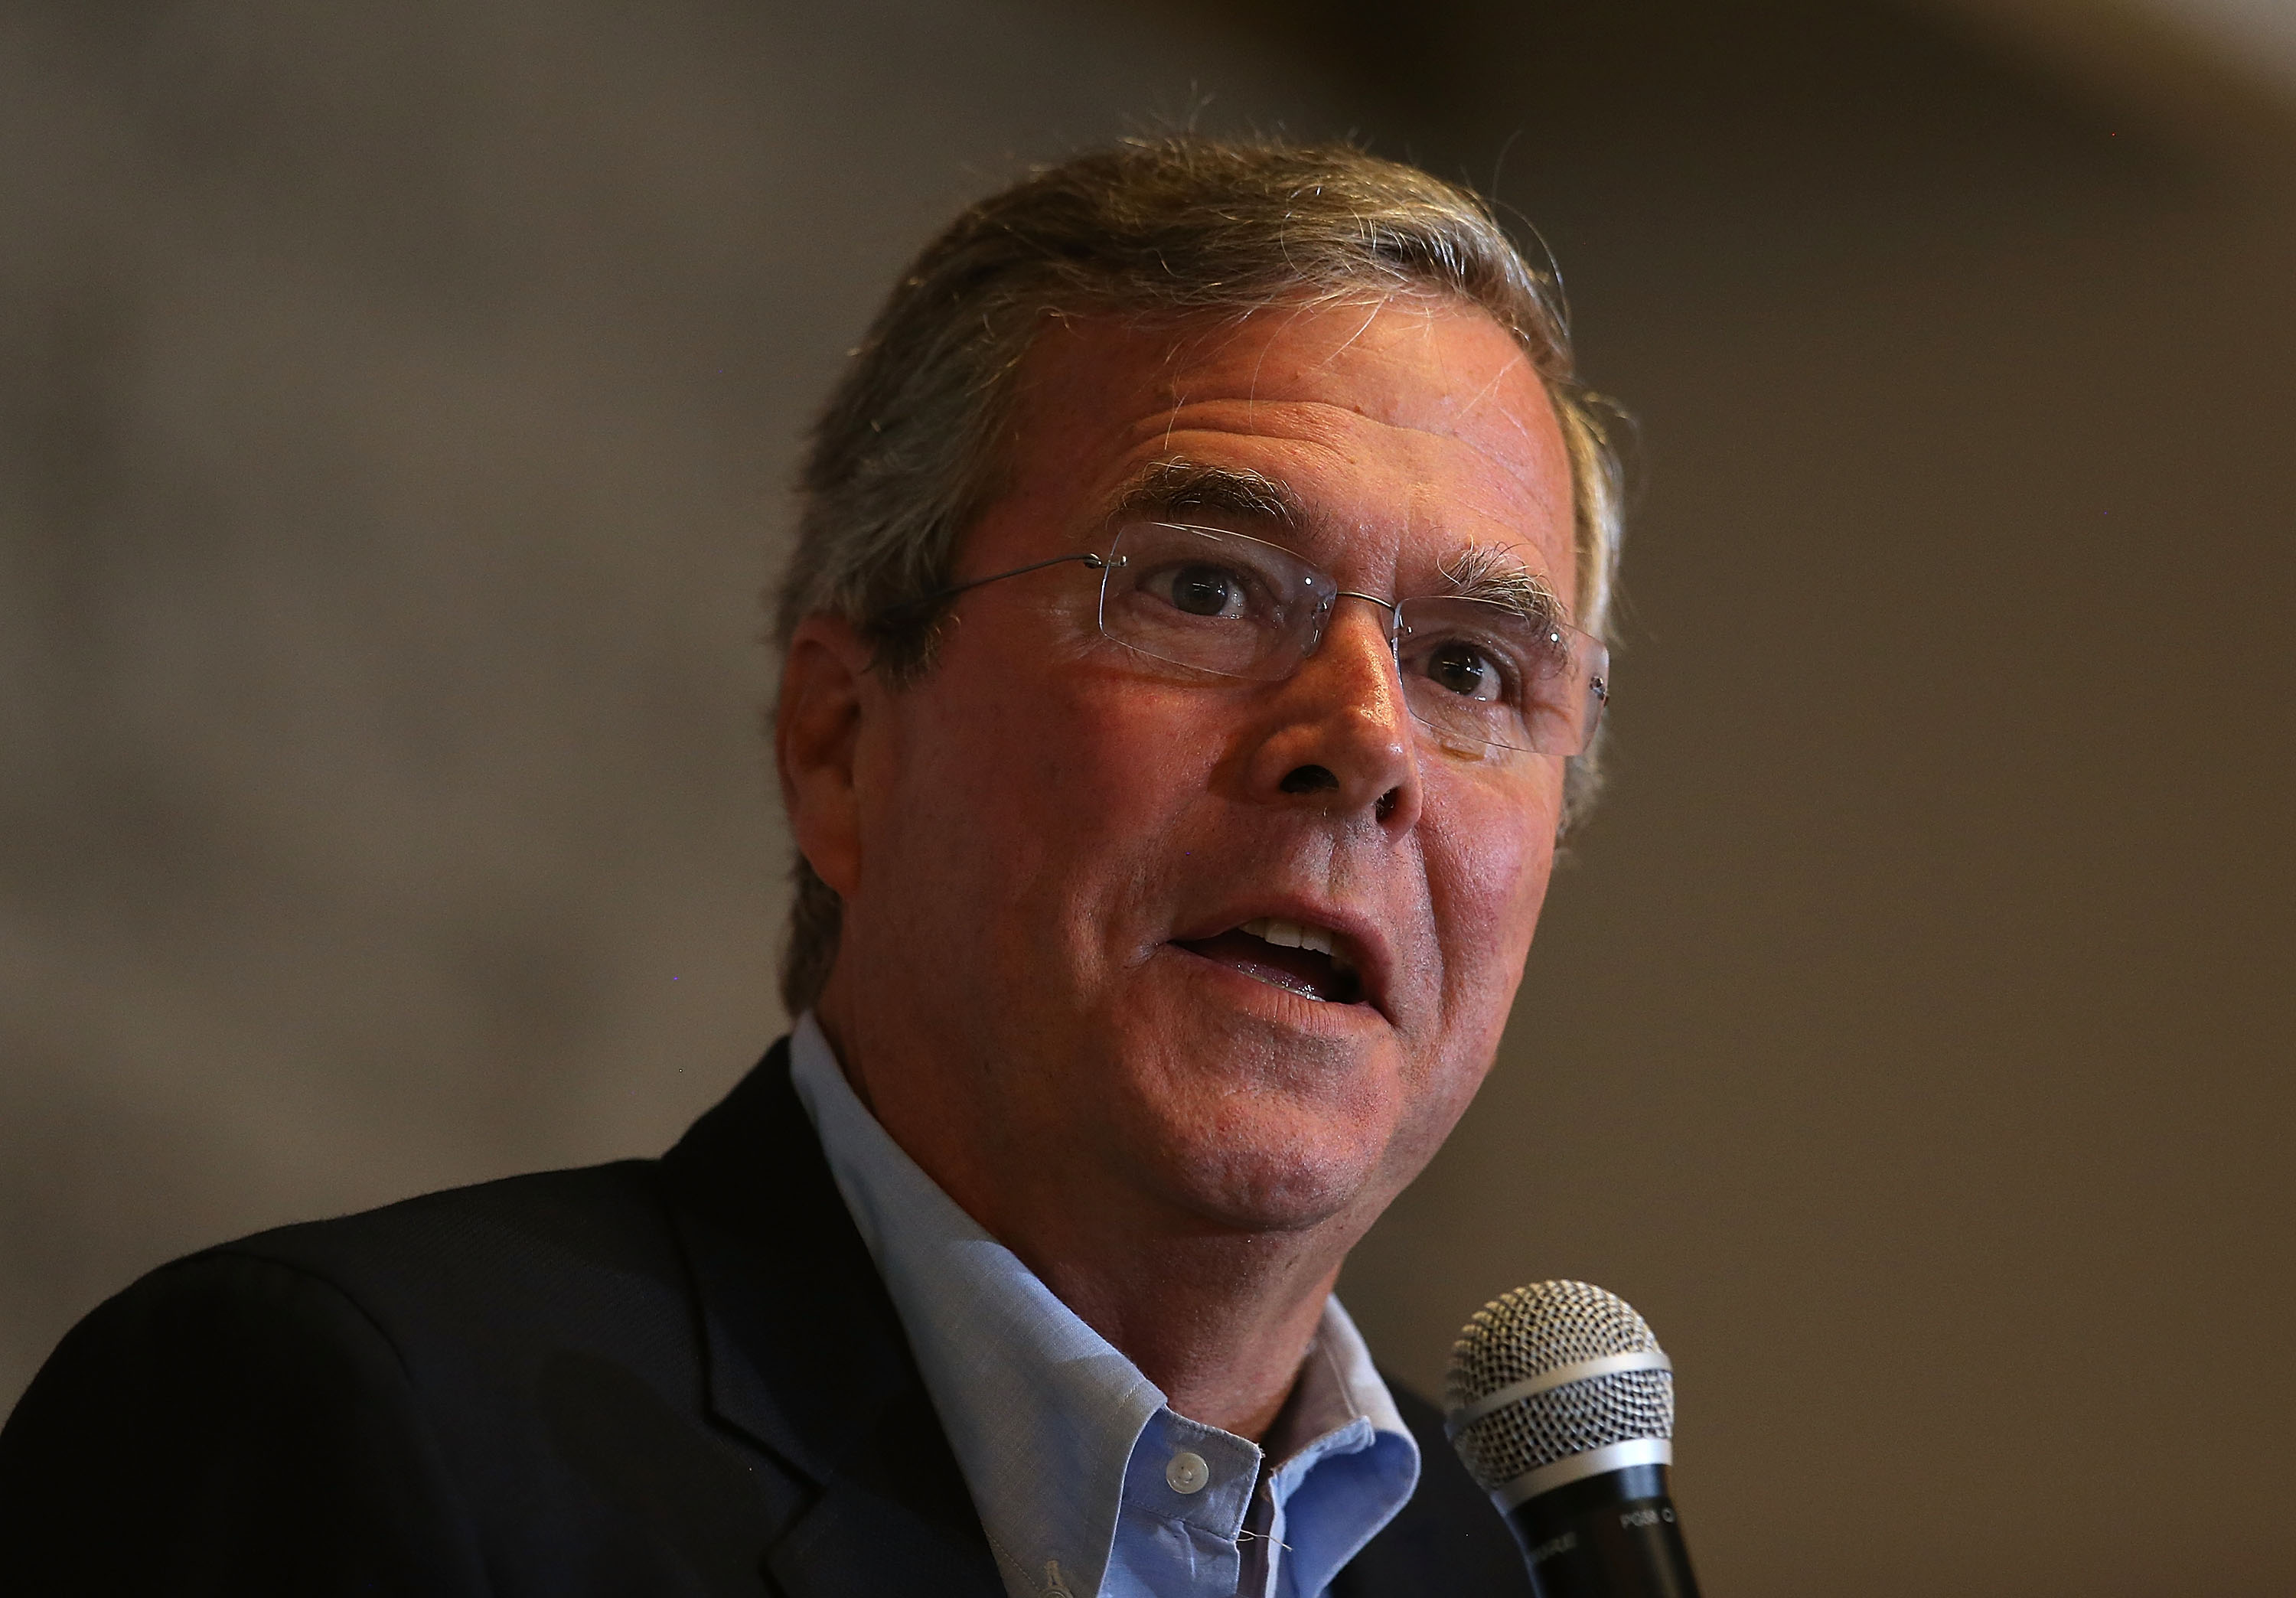 Jeb Bush Quotes 8 Arrogant Jeb Bush Quotes That Completely Negate His Comment